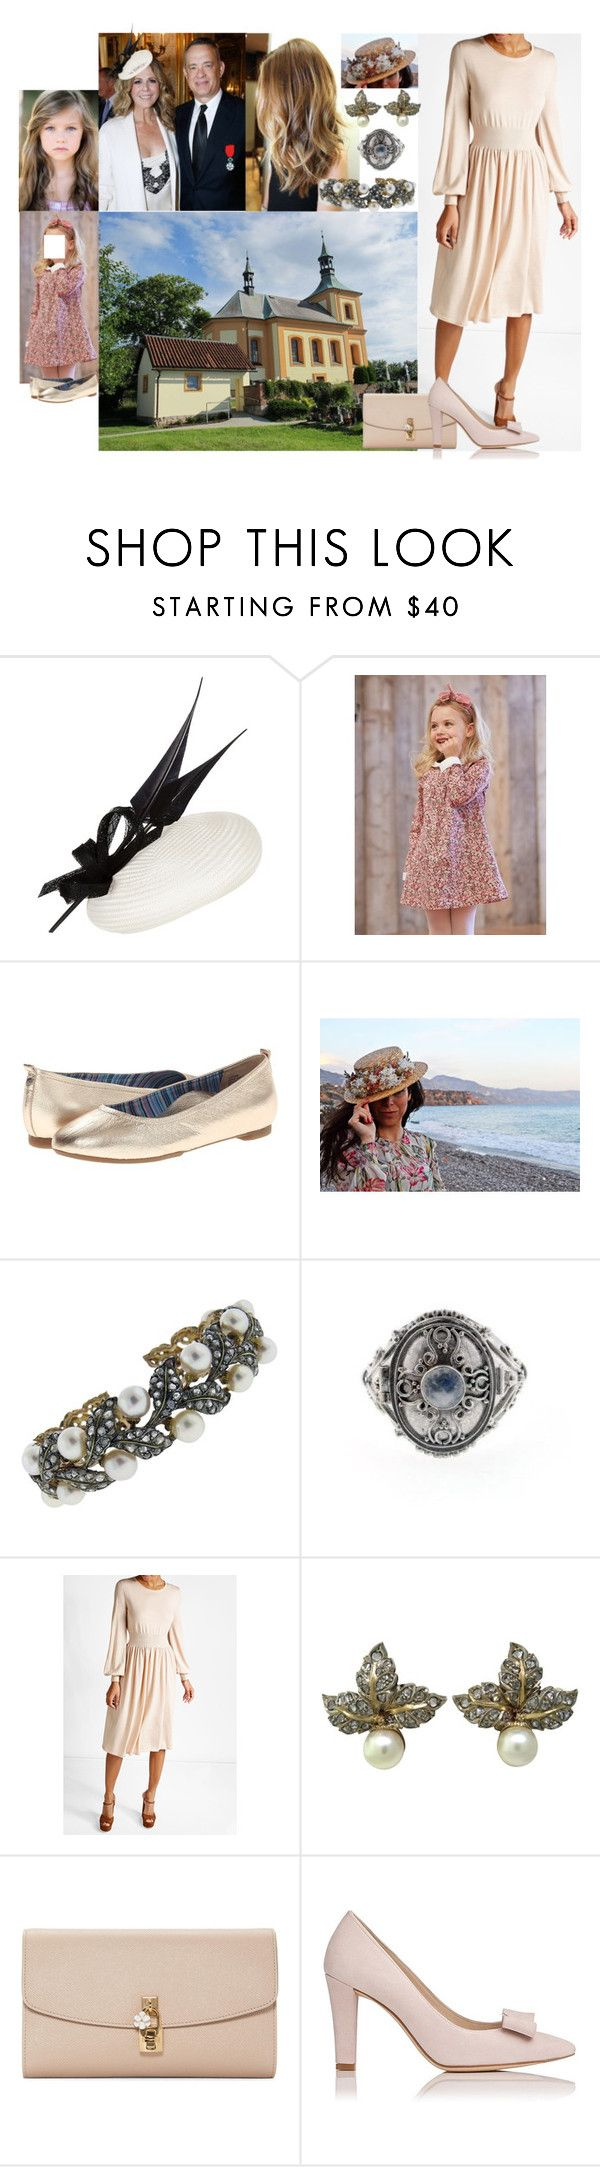 """Attending the Sunday church service together with Amy and her parents at the Abrabay Church"" by damen-i-min-fantasi ❤ liked on Polyvore featuring Jacques Vert, Aetrex, Buccellati and Dolce&Gabbana"